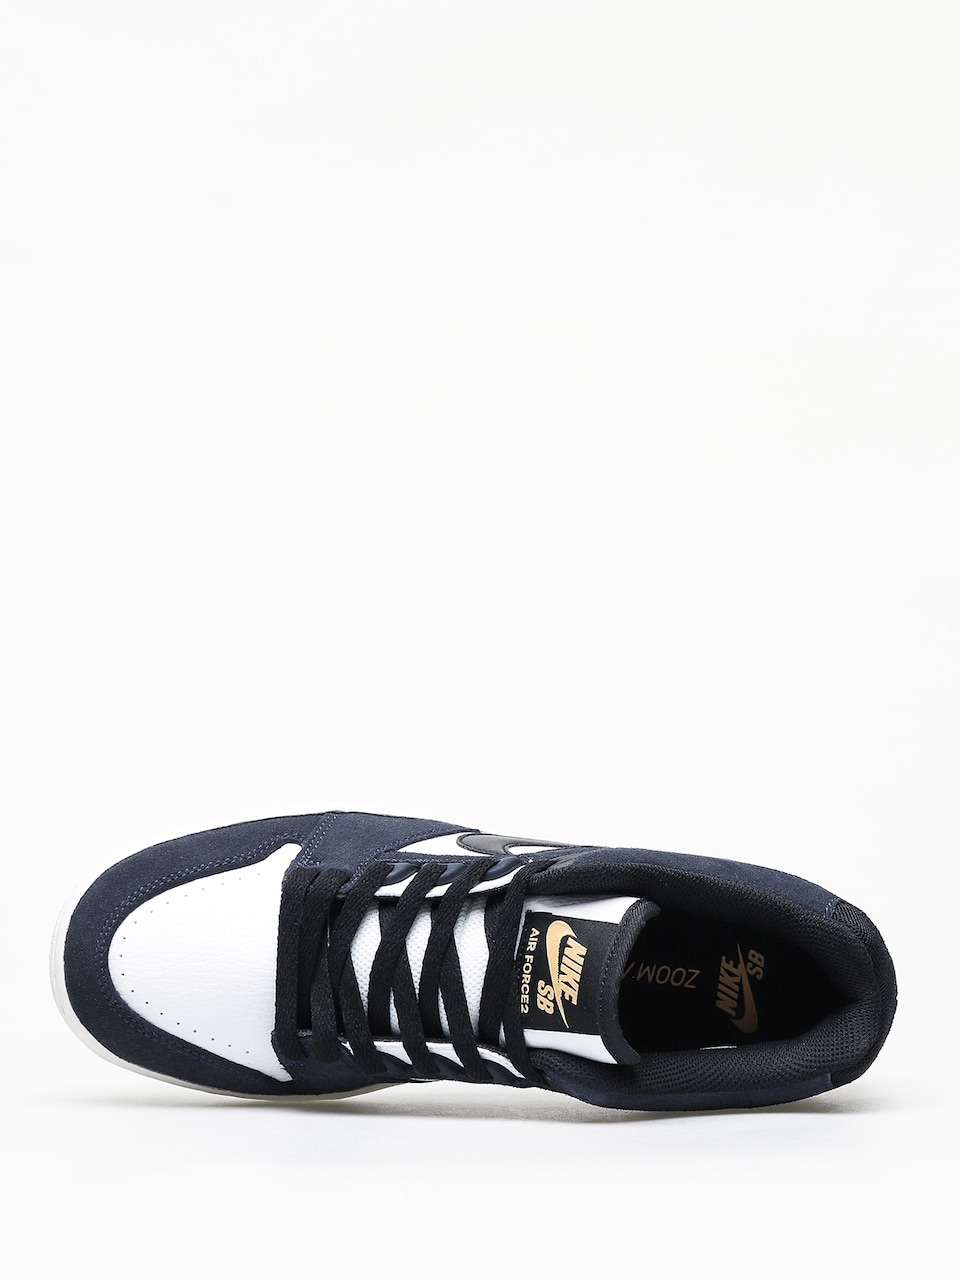 Nike SB Air Force II Low Shoes (obsidianblack white